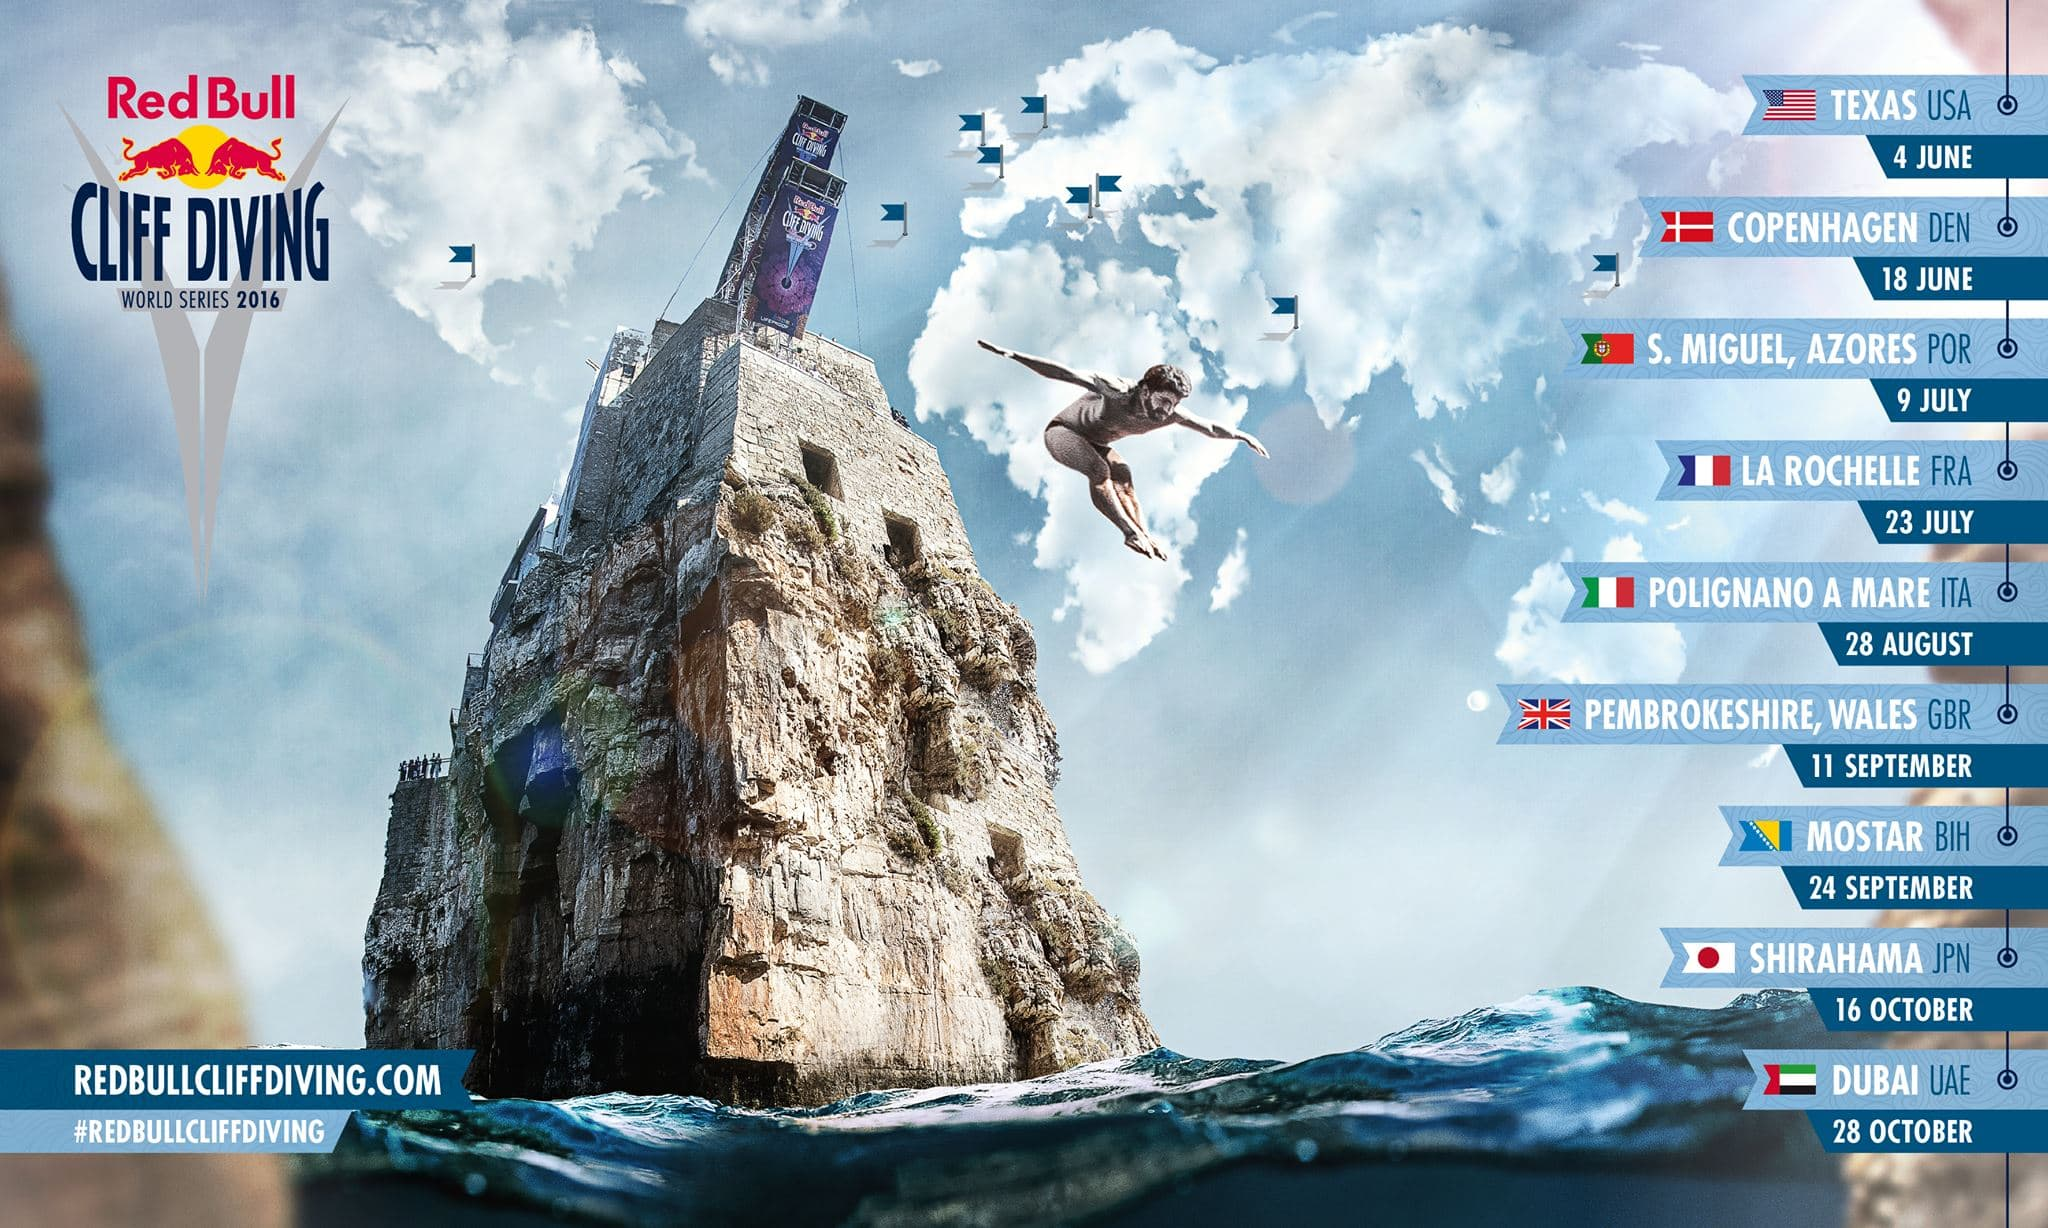 Red Bull Cliff Diving World Series 2016 - returning to Pembrokeshire Wales!